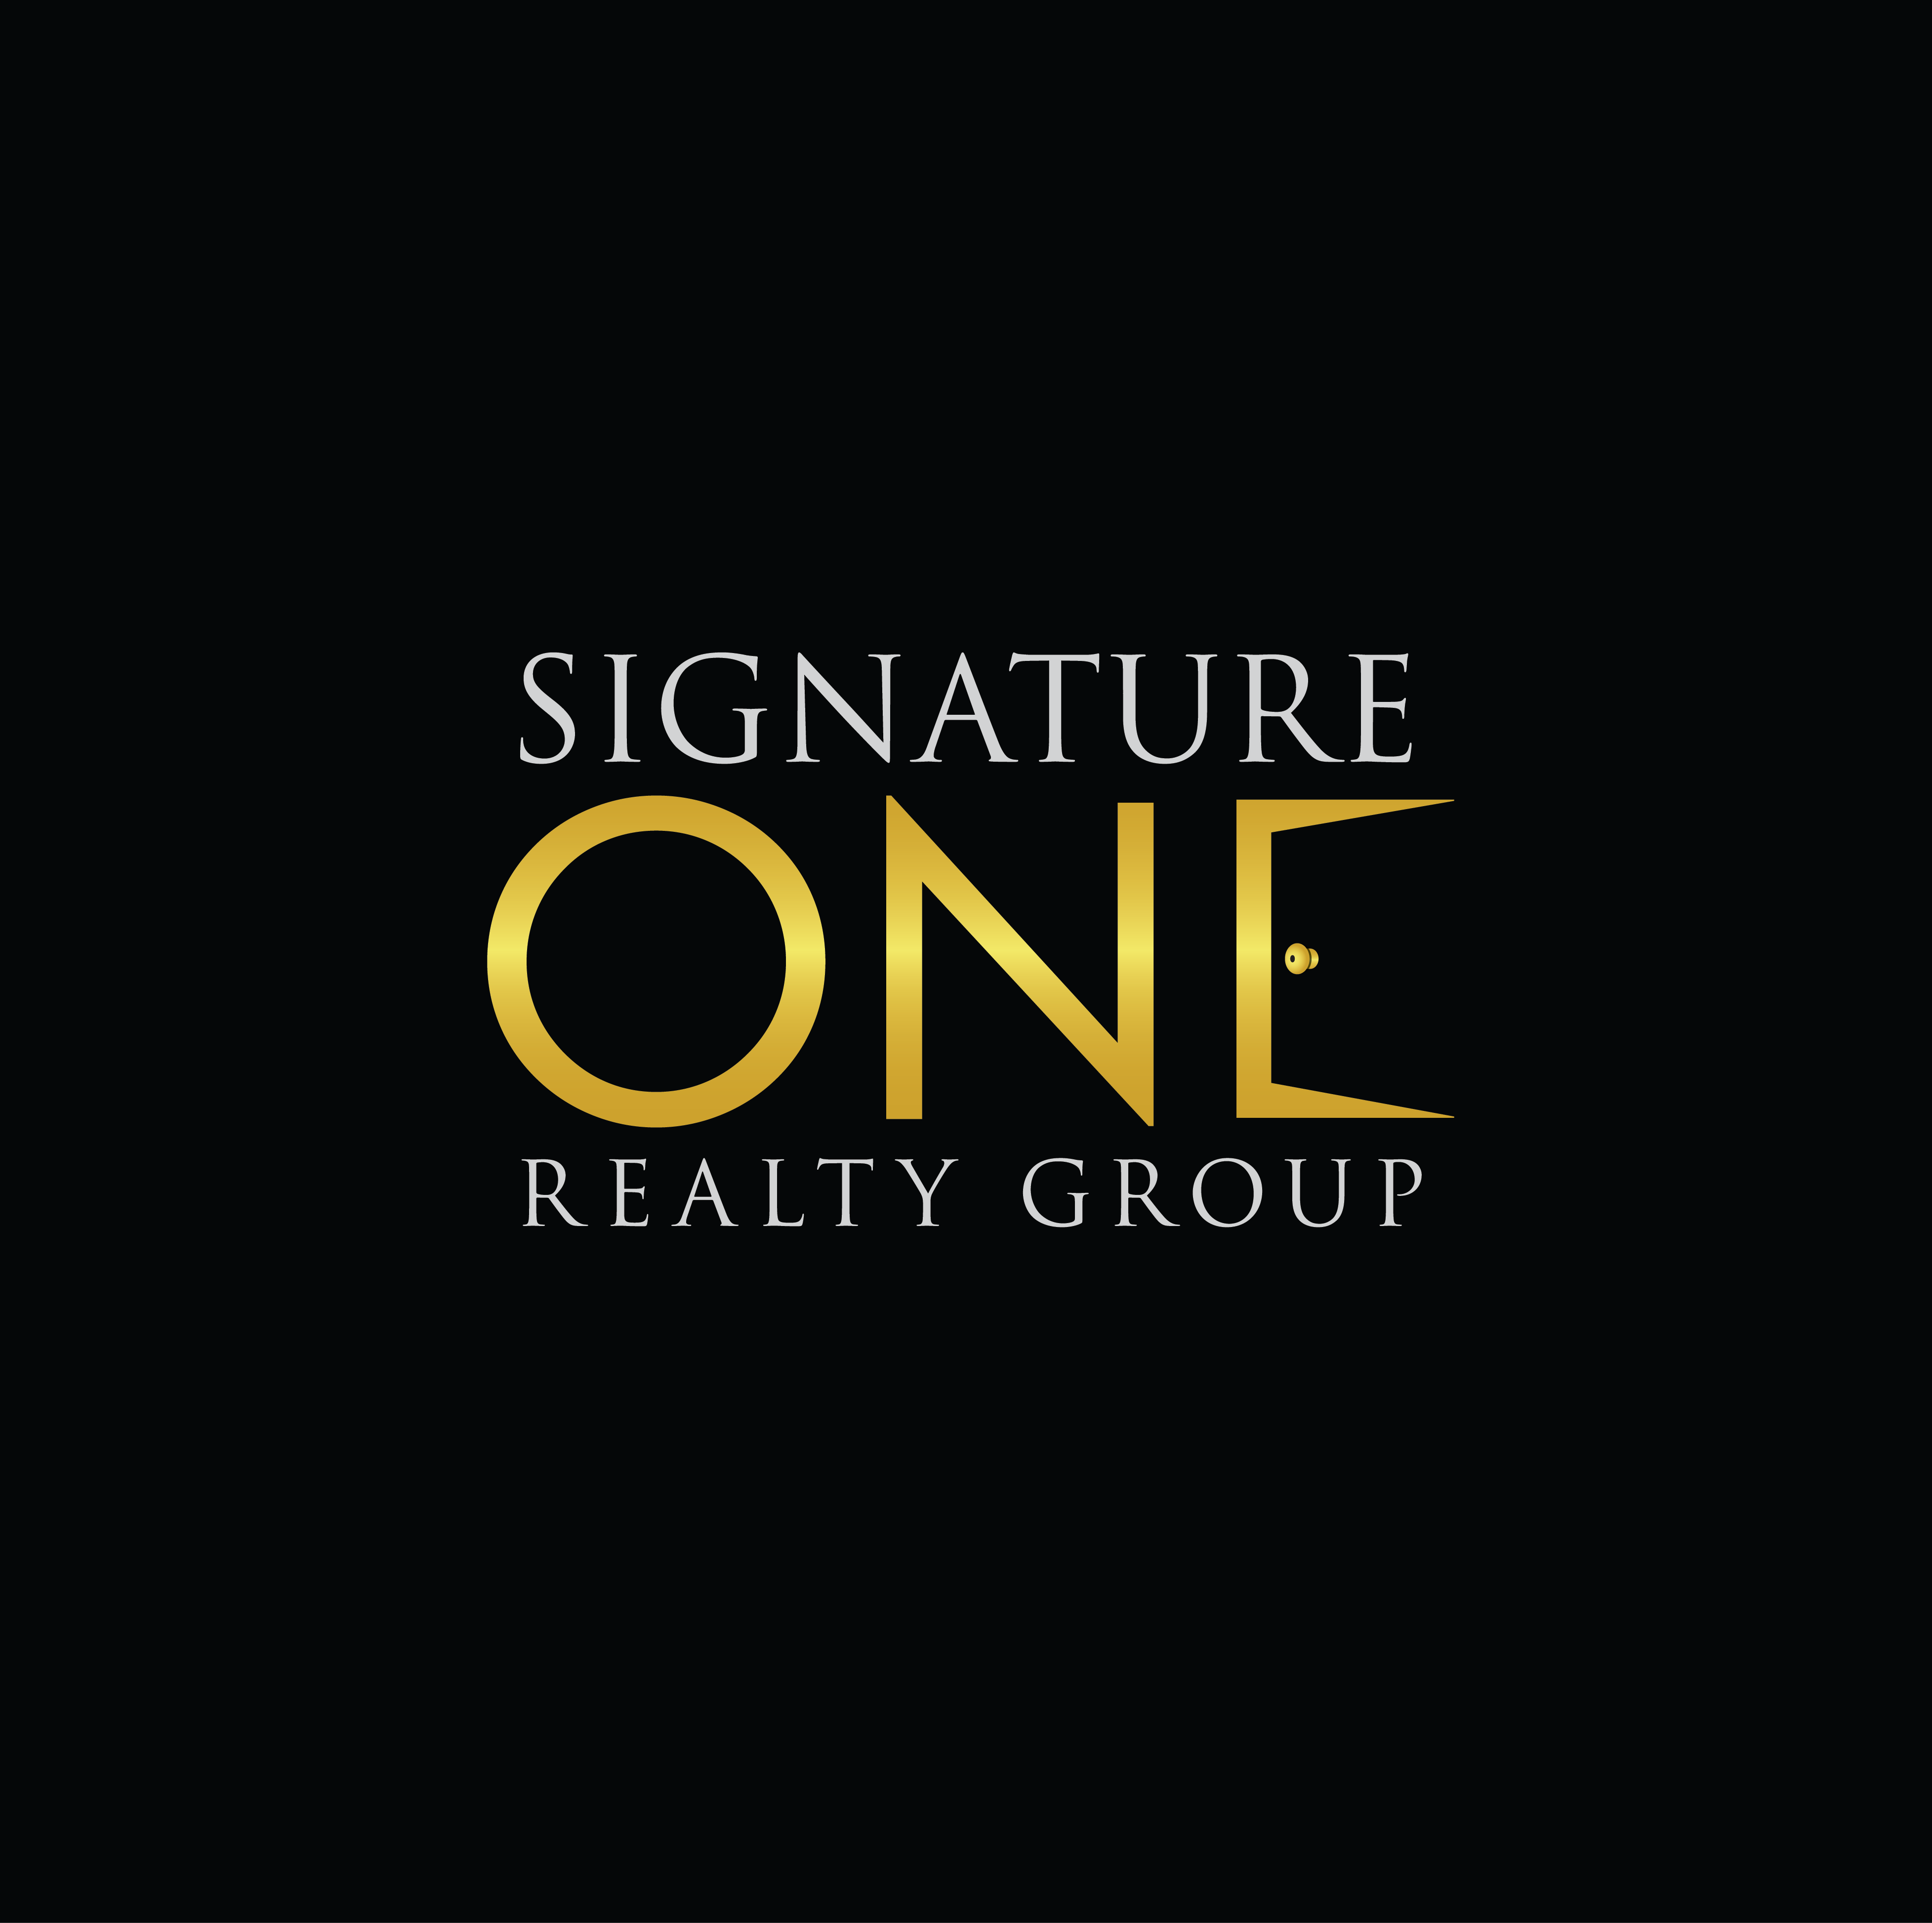 Logo EDIT - Signature One Realty Group